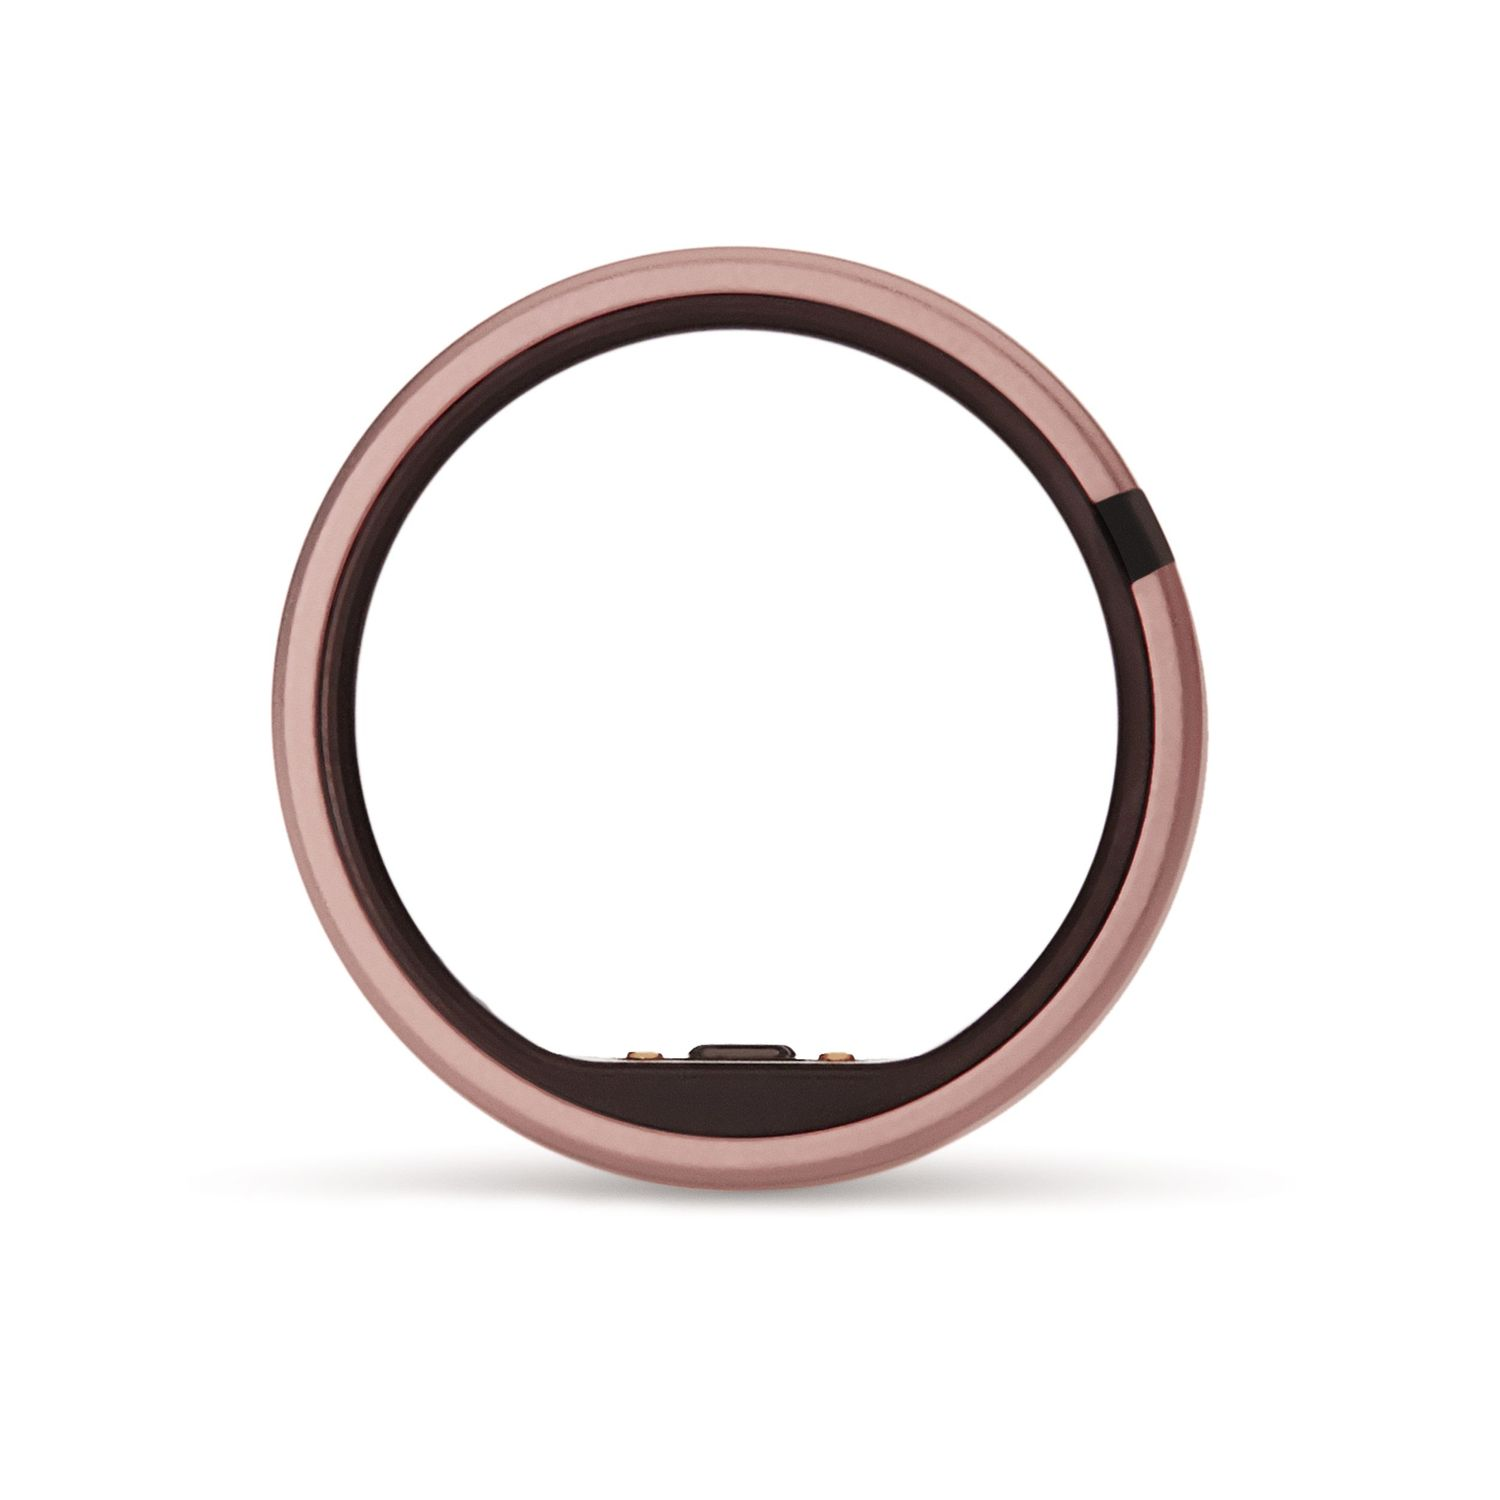 rose colored Motiv ring on white background facing forward